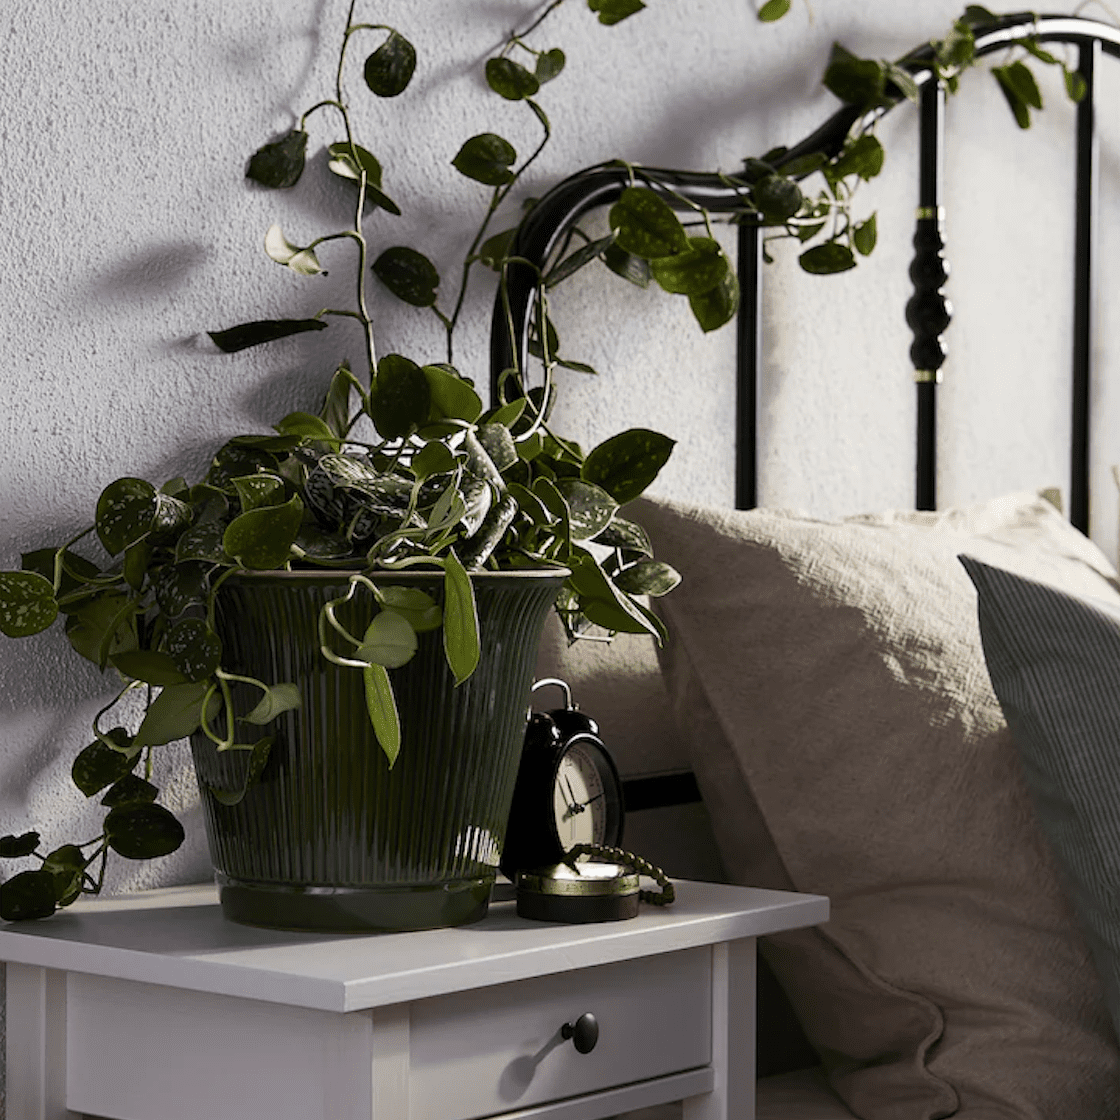 A green plant pot on a white bedside table